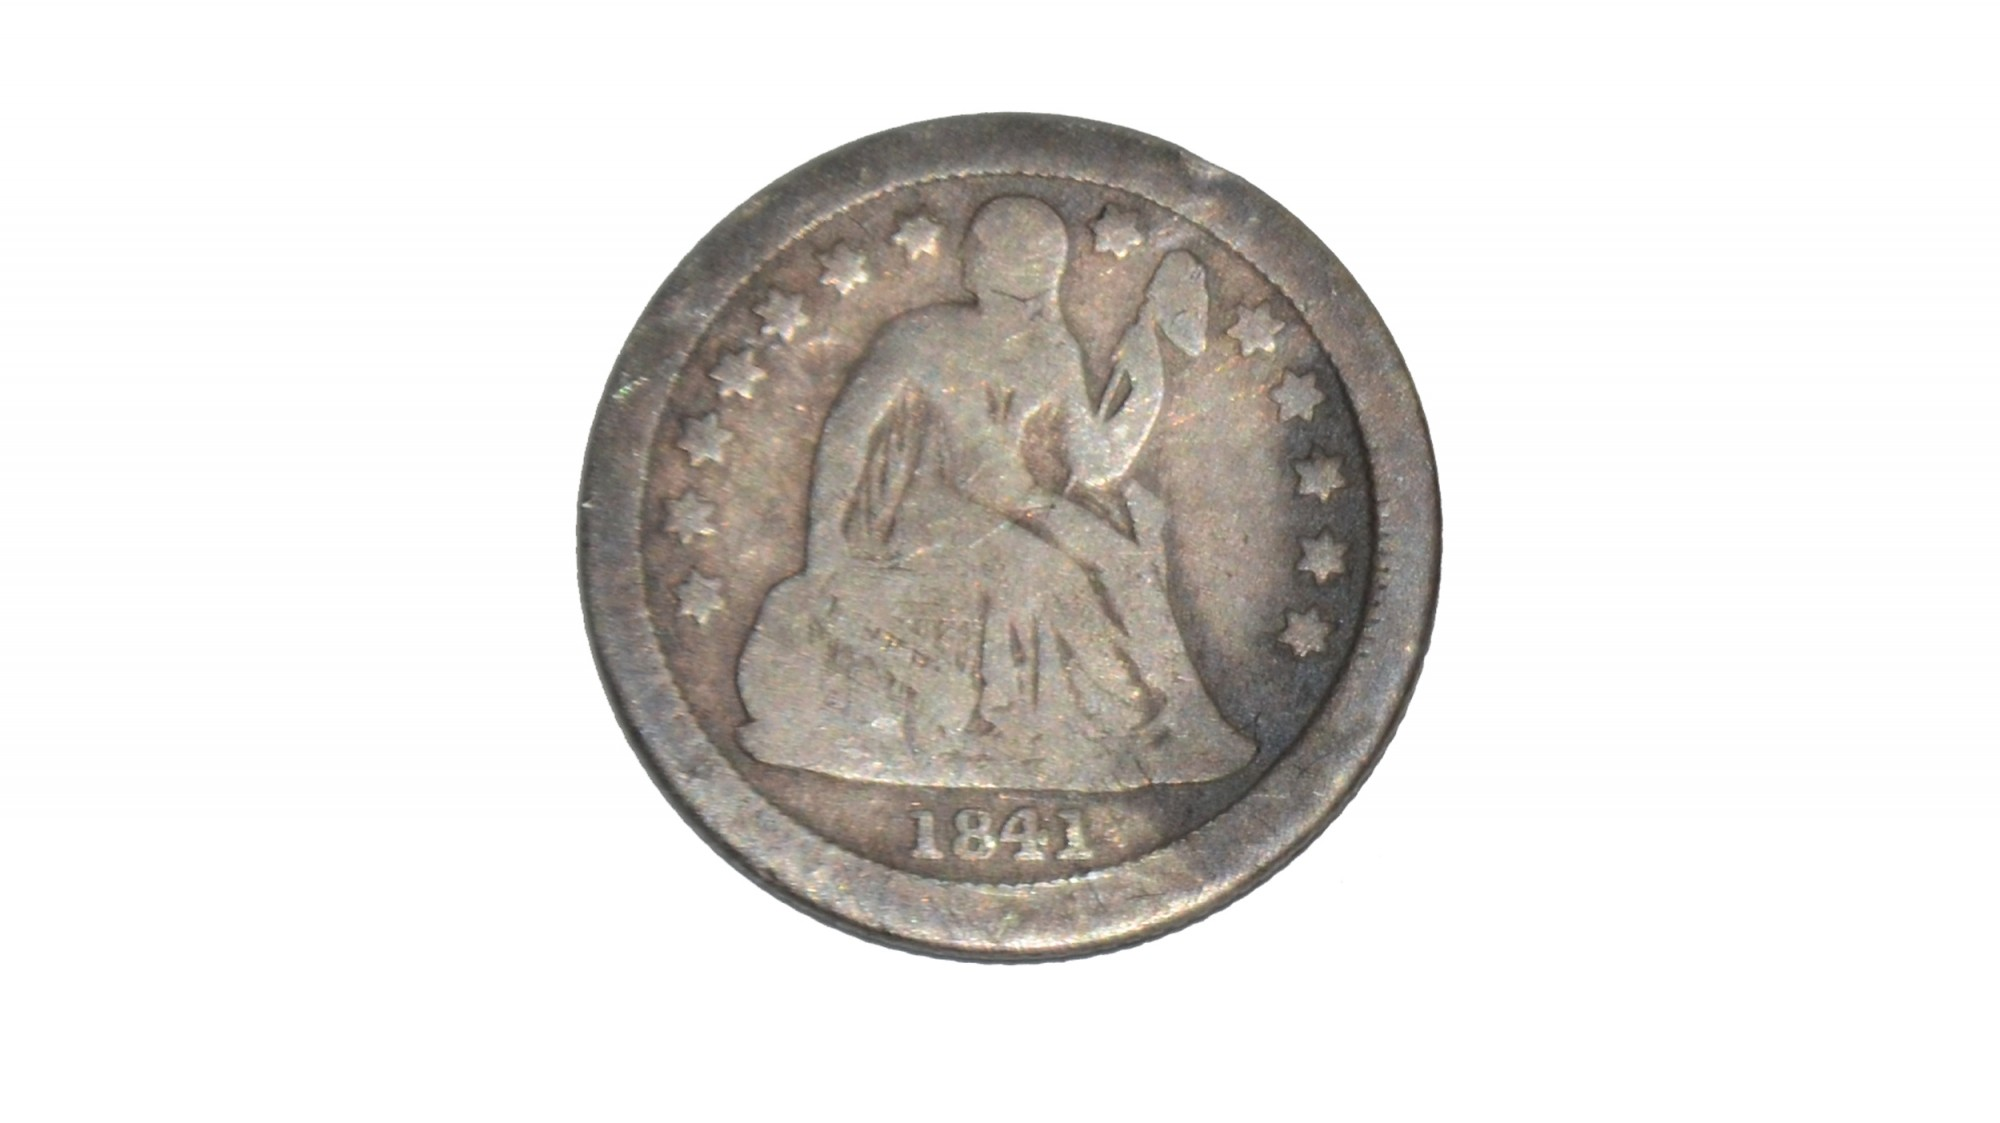 SILVER DIME DATED 1841 – GETTYSBURG